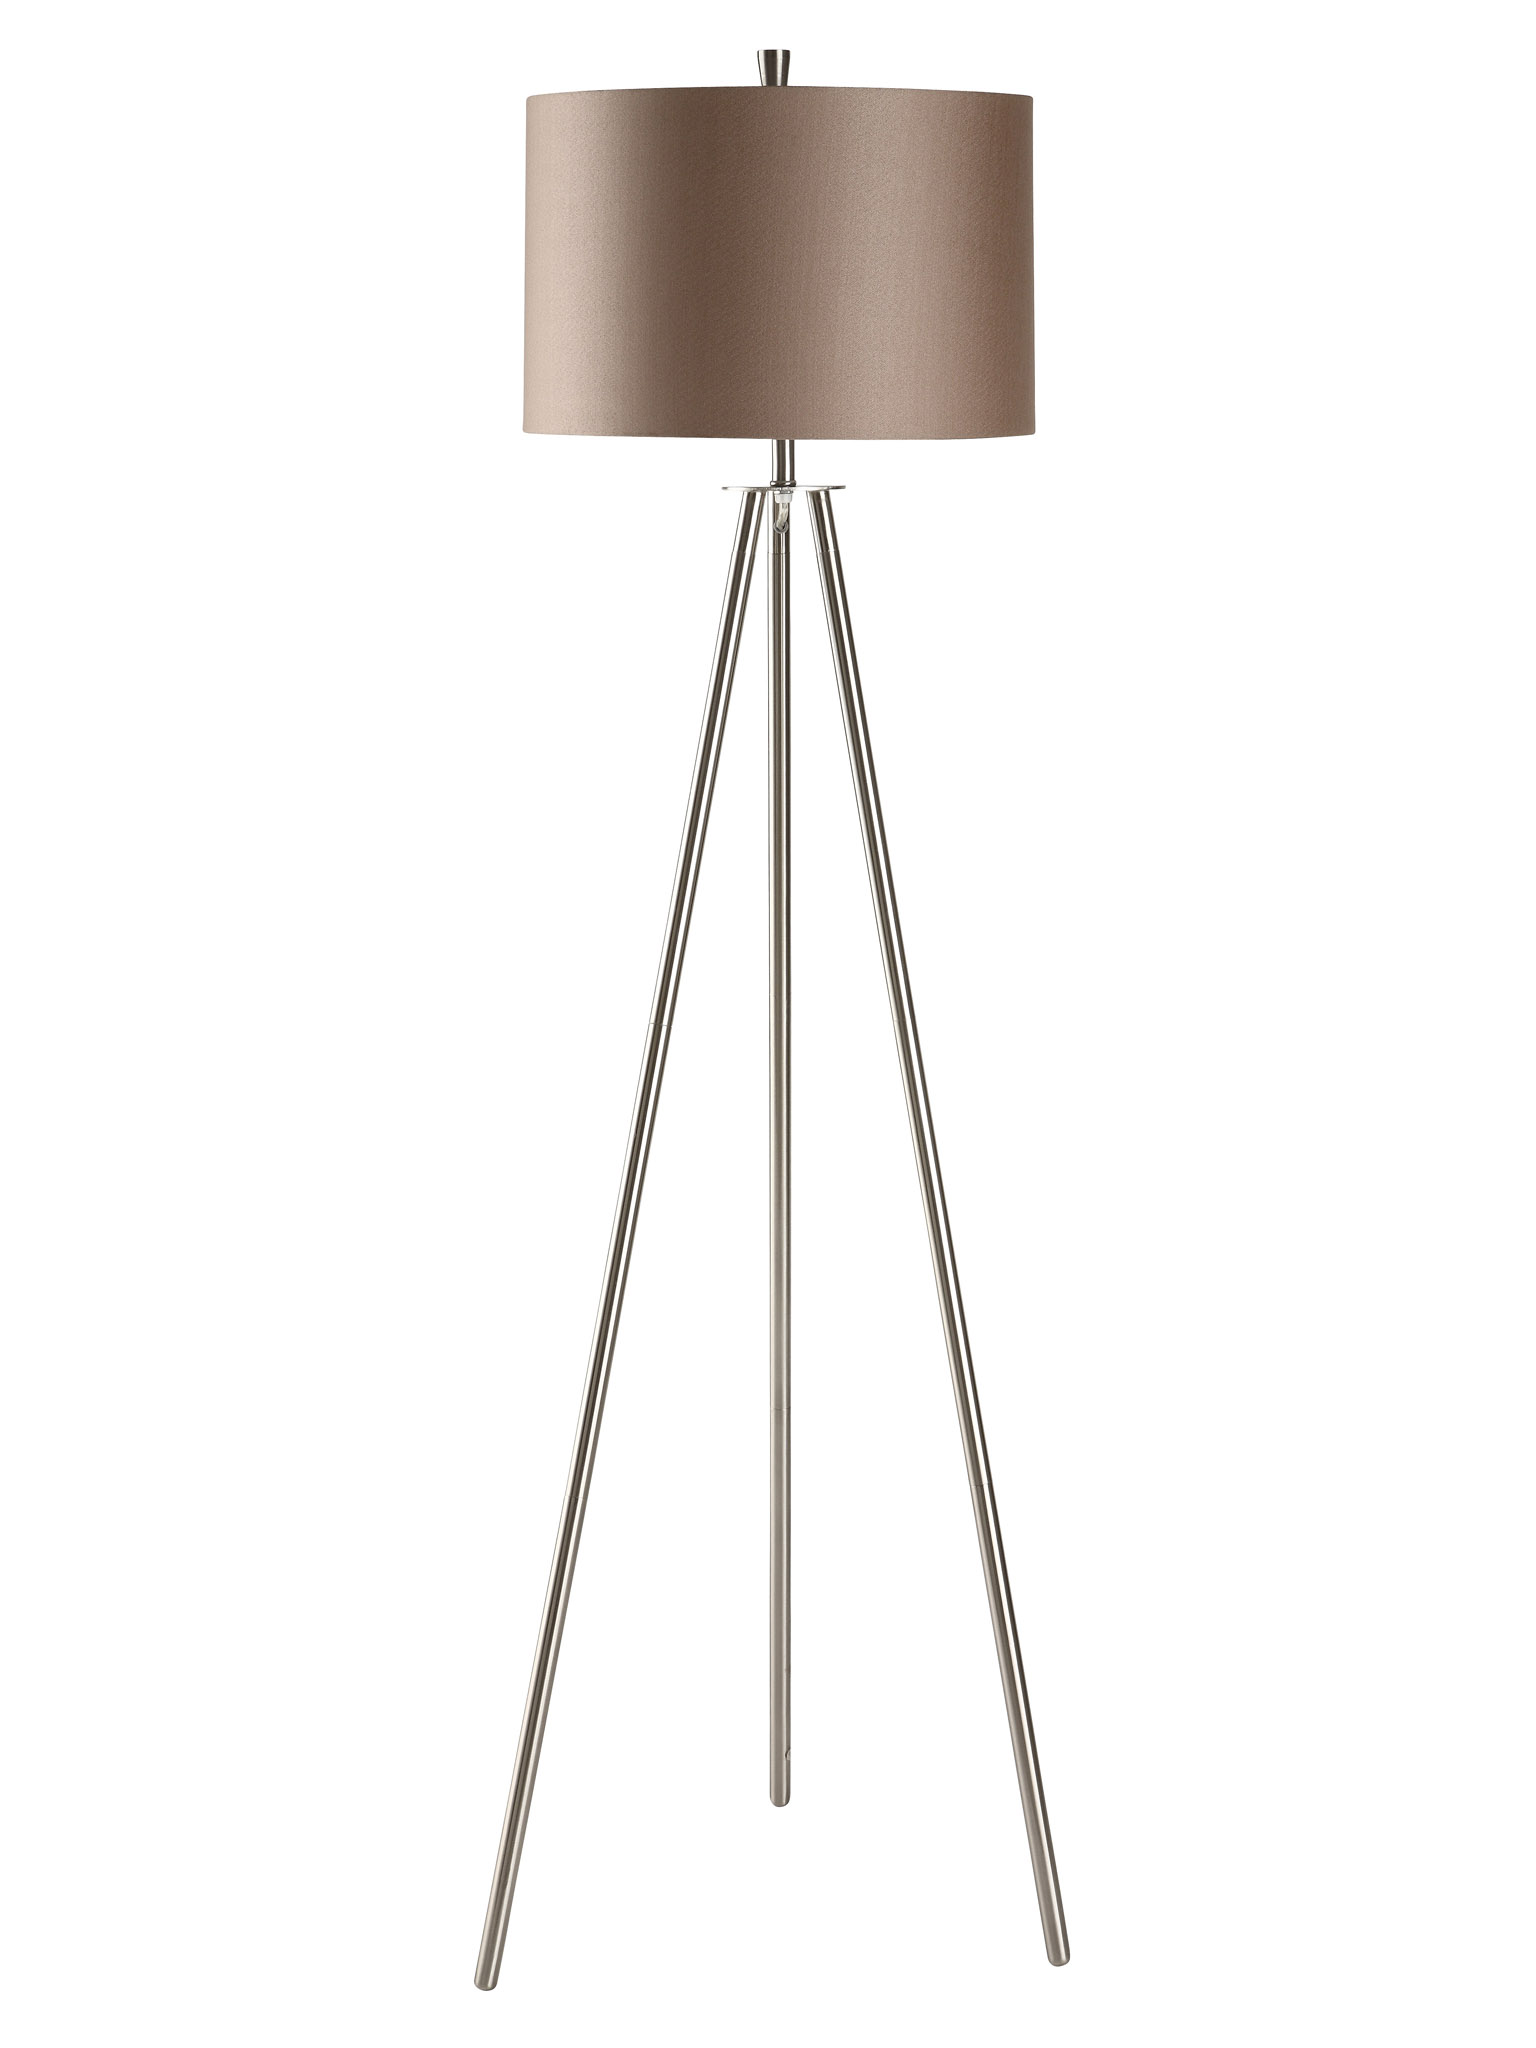 60 Quot Tripod Nickel Amp Metal Floor Lamp